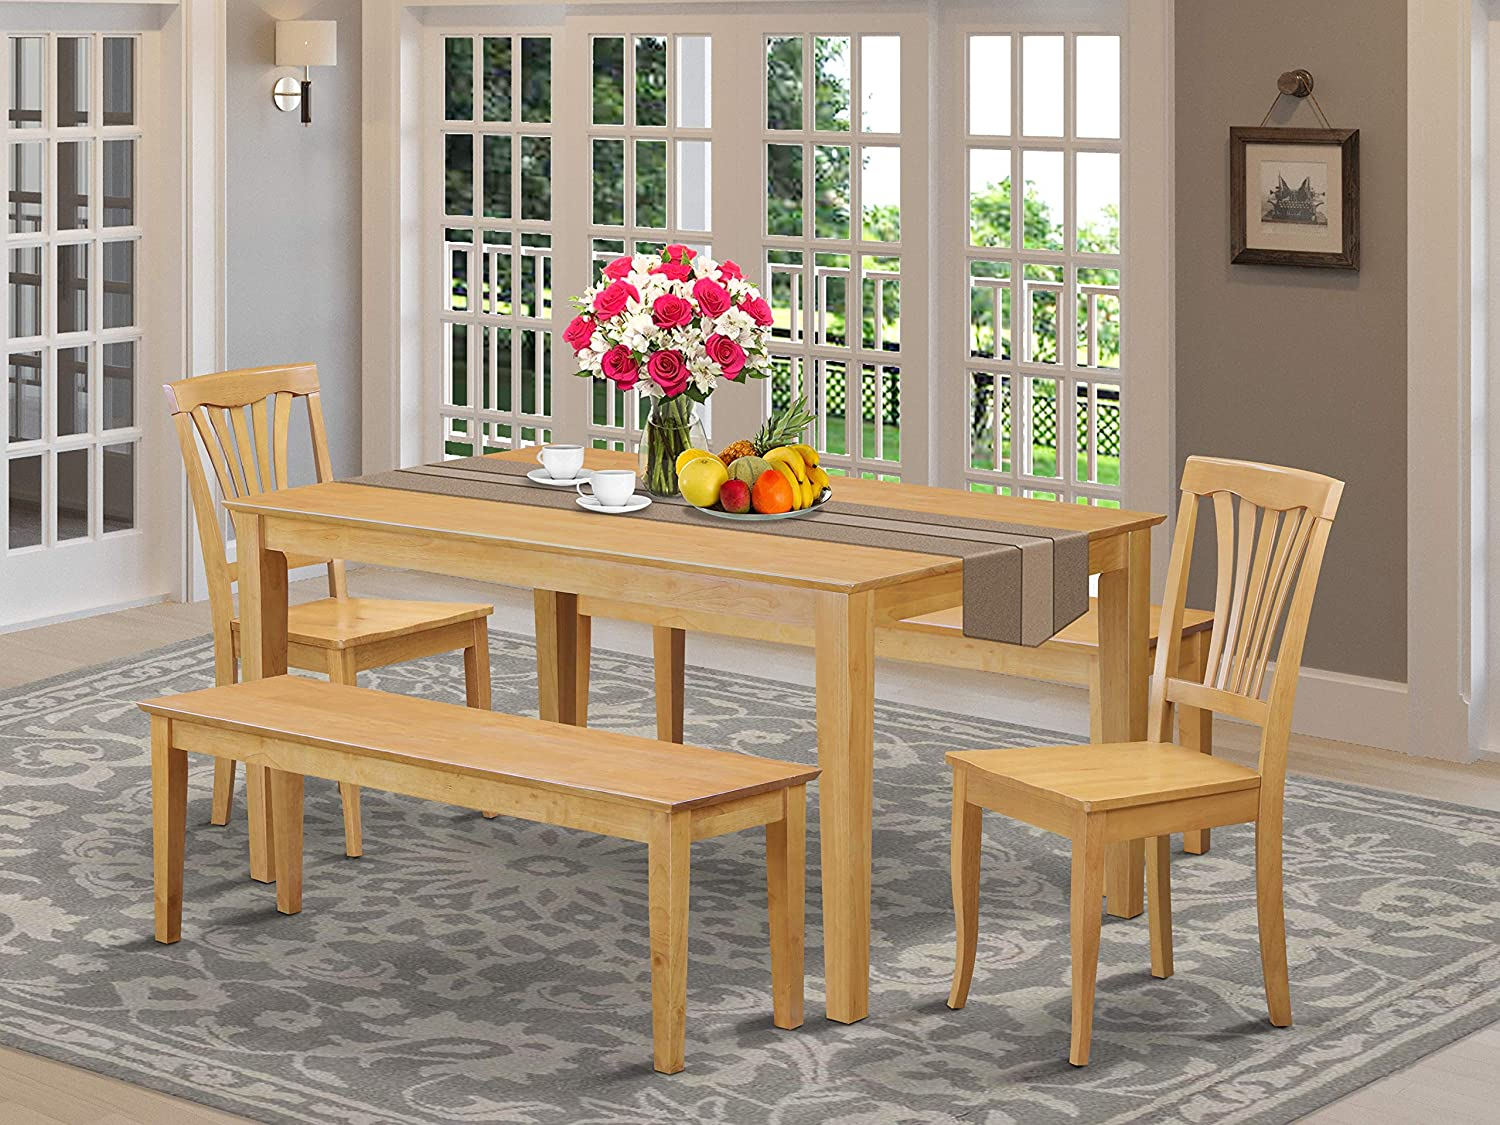 East West Furniture Wooden Dining Table Set 9 Piece   Wooden Kitchen Chairs  Seat   Oak Finish Small Rectangular Dining Table and Bench